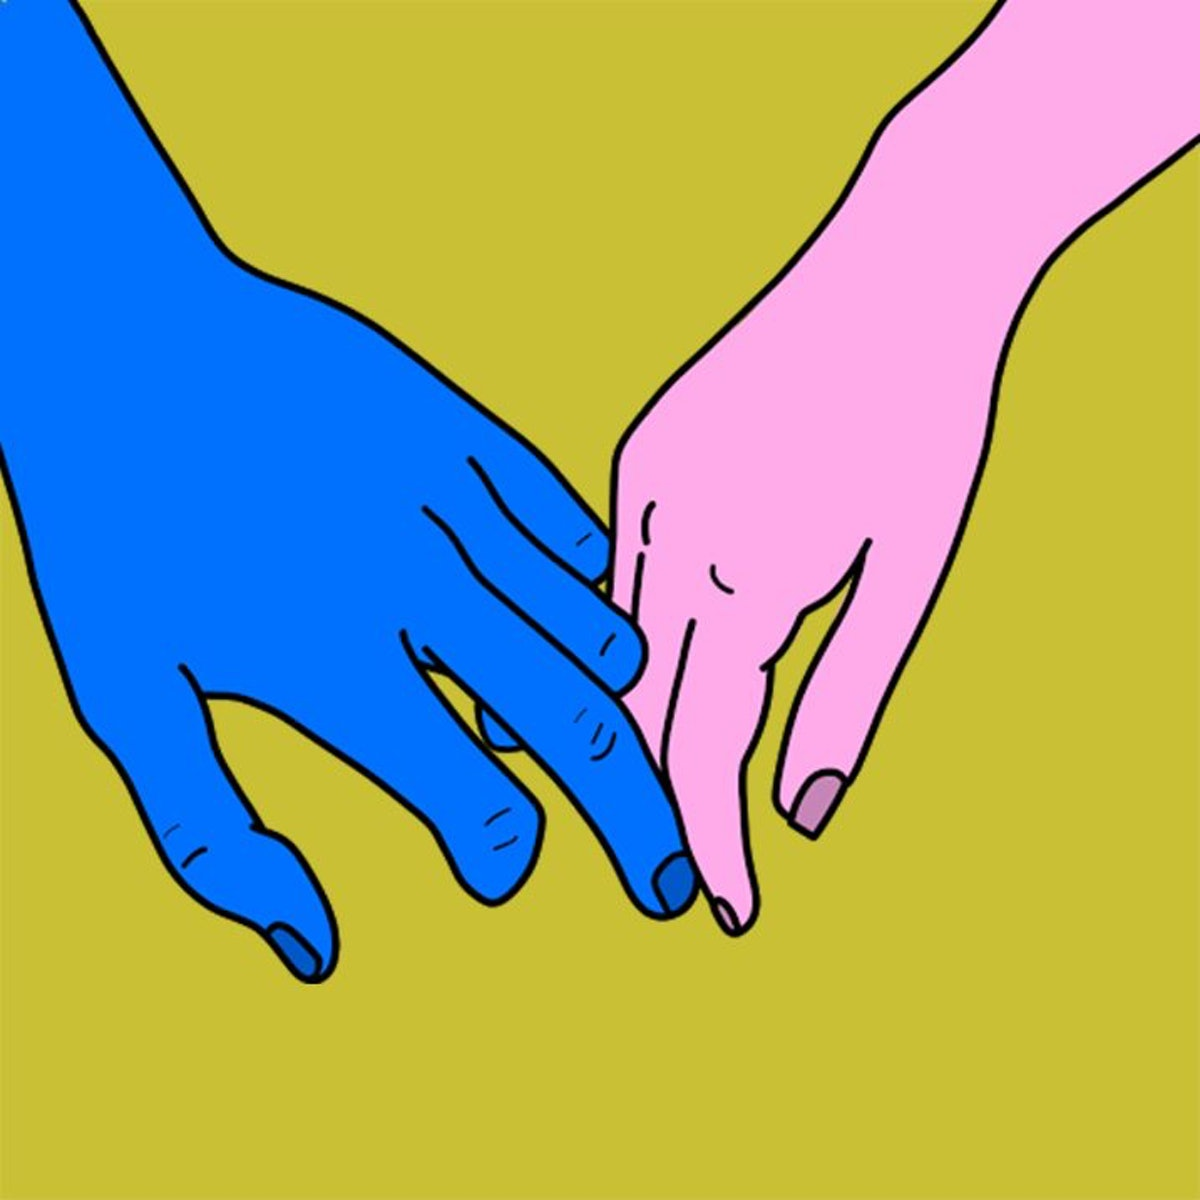 Loosely interlaced fingers is a sweet way to hold hands.